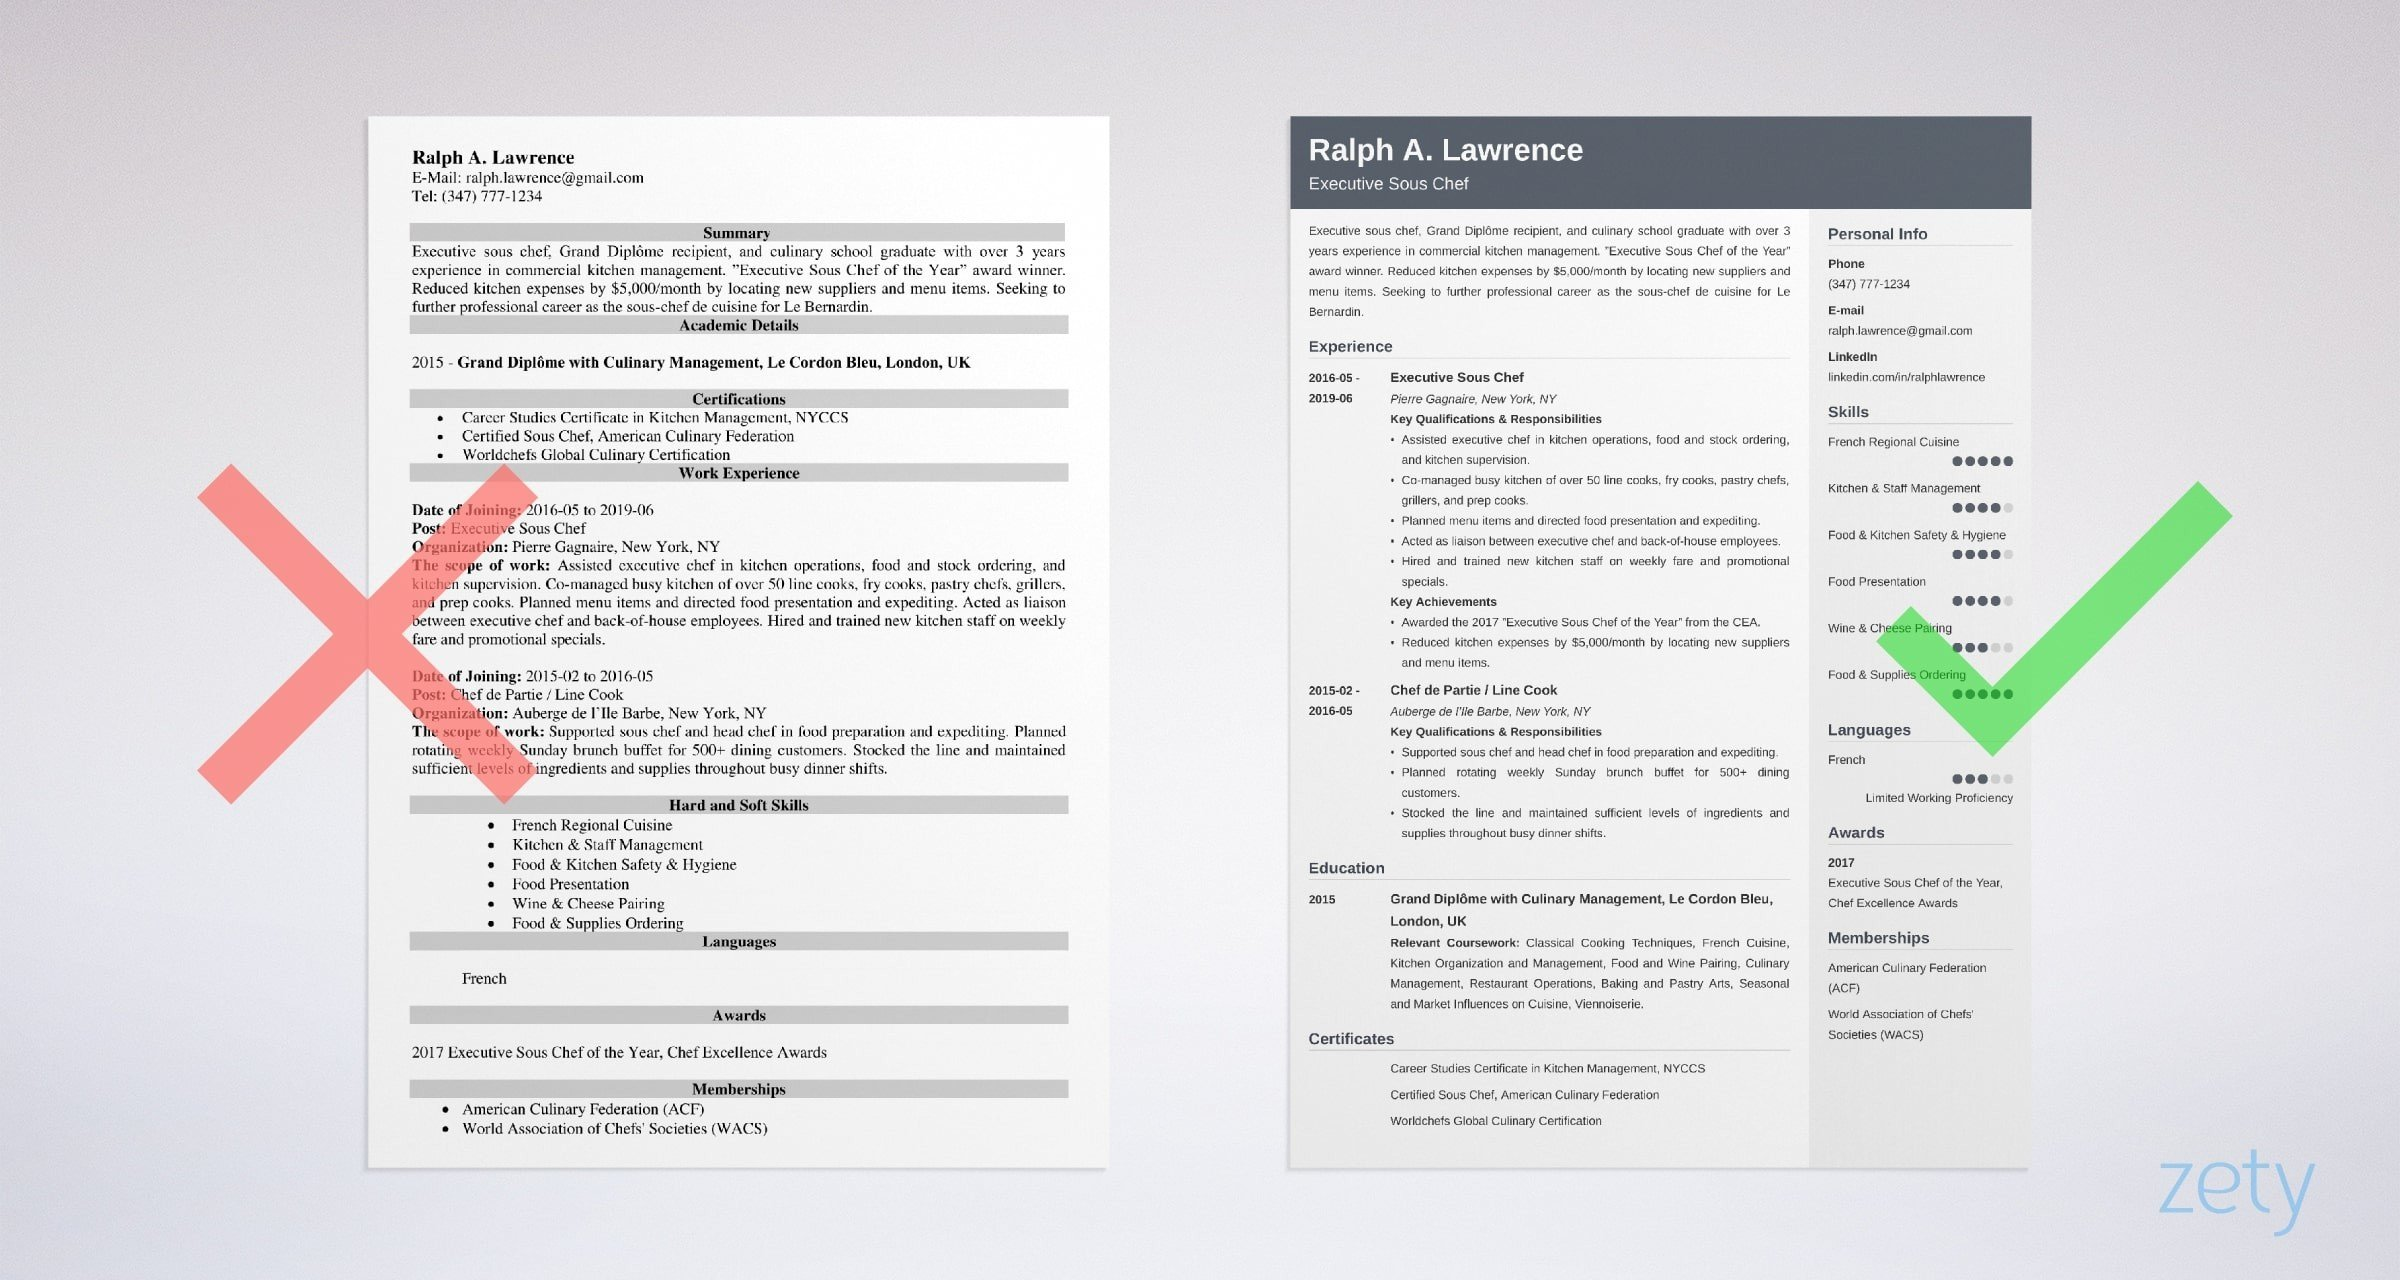 sous chef resume sample guide examples executive job description for example maker Resume Executive Chef Job Description For Resume